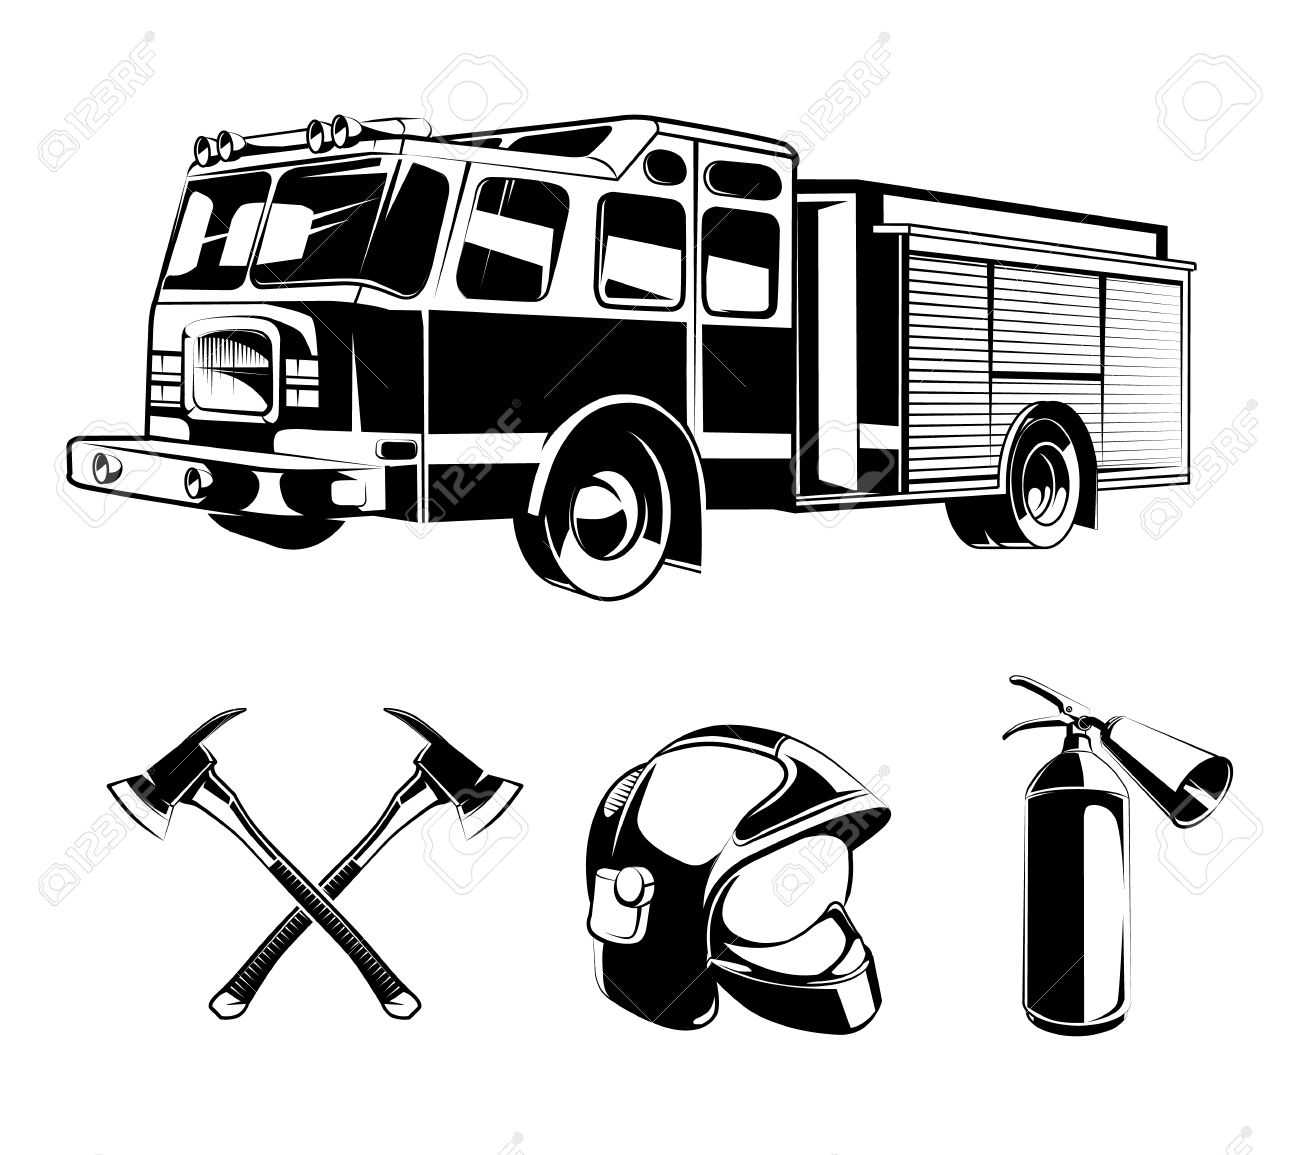 Firefighters vector elements for labels or logos. Helmet and axe, protection and rescue illustration - 51644172